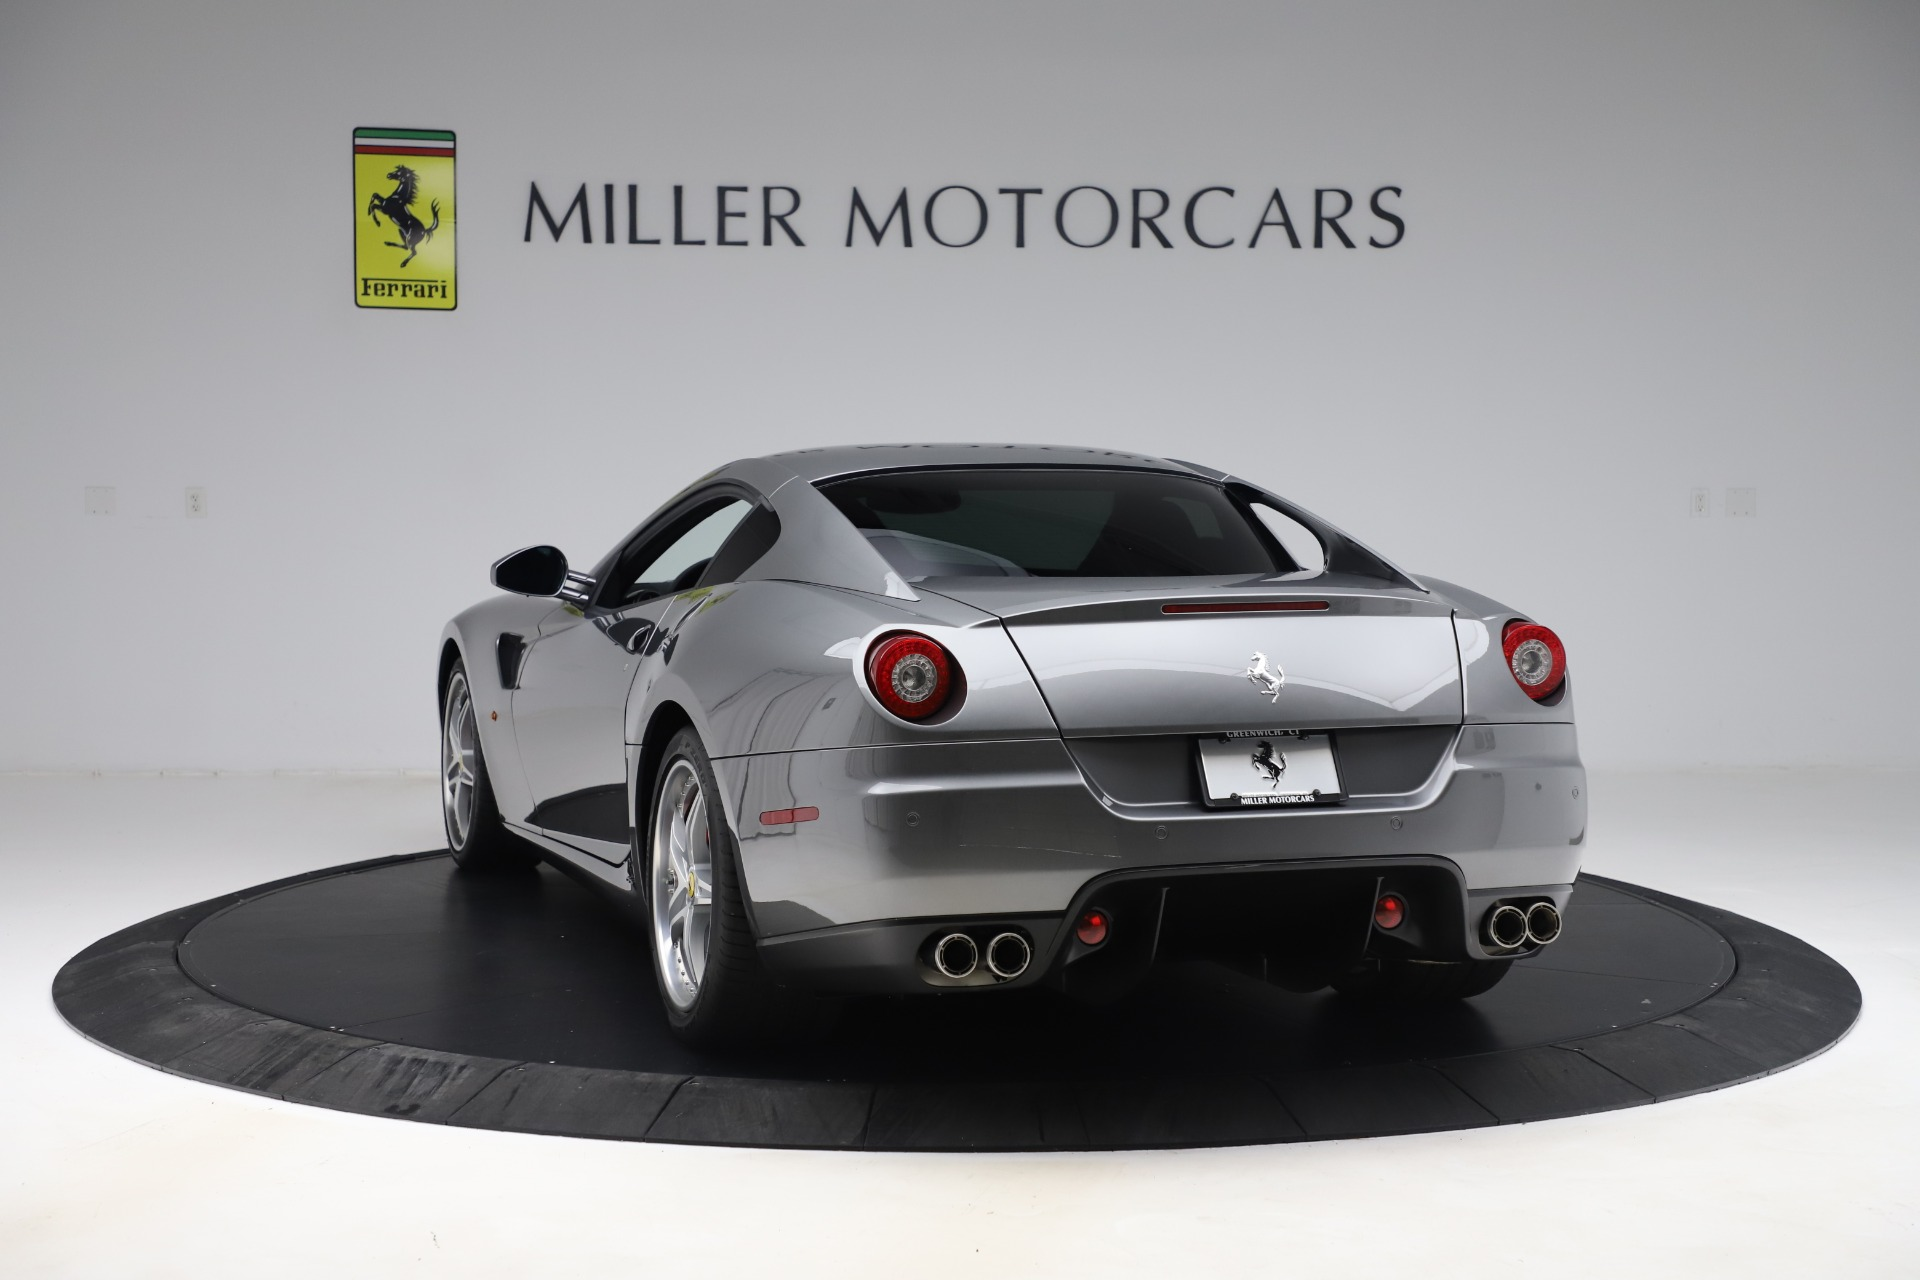 Used 2010 Ferrari 599 GTB Fiorano HGTE For Sale In Westport, CT 3544_p5